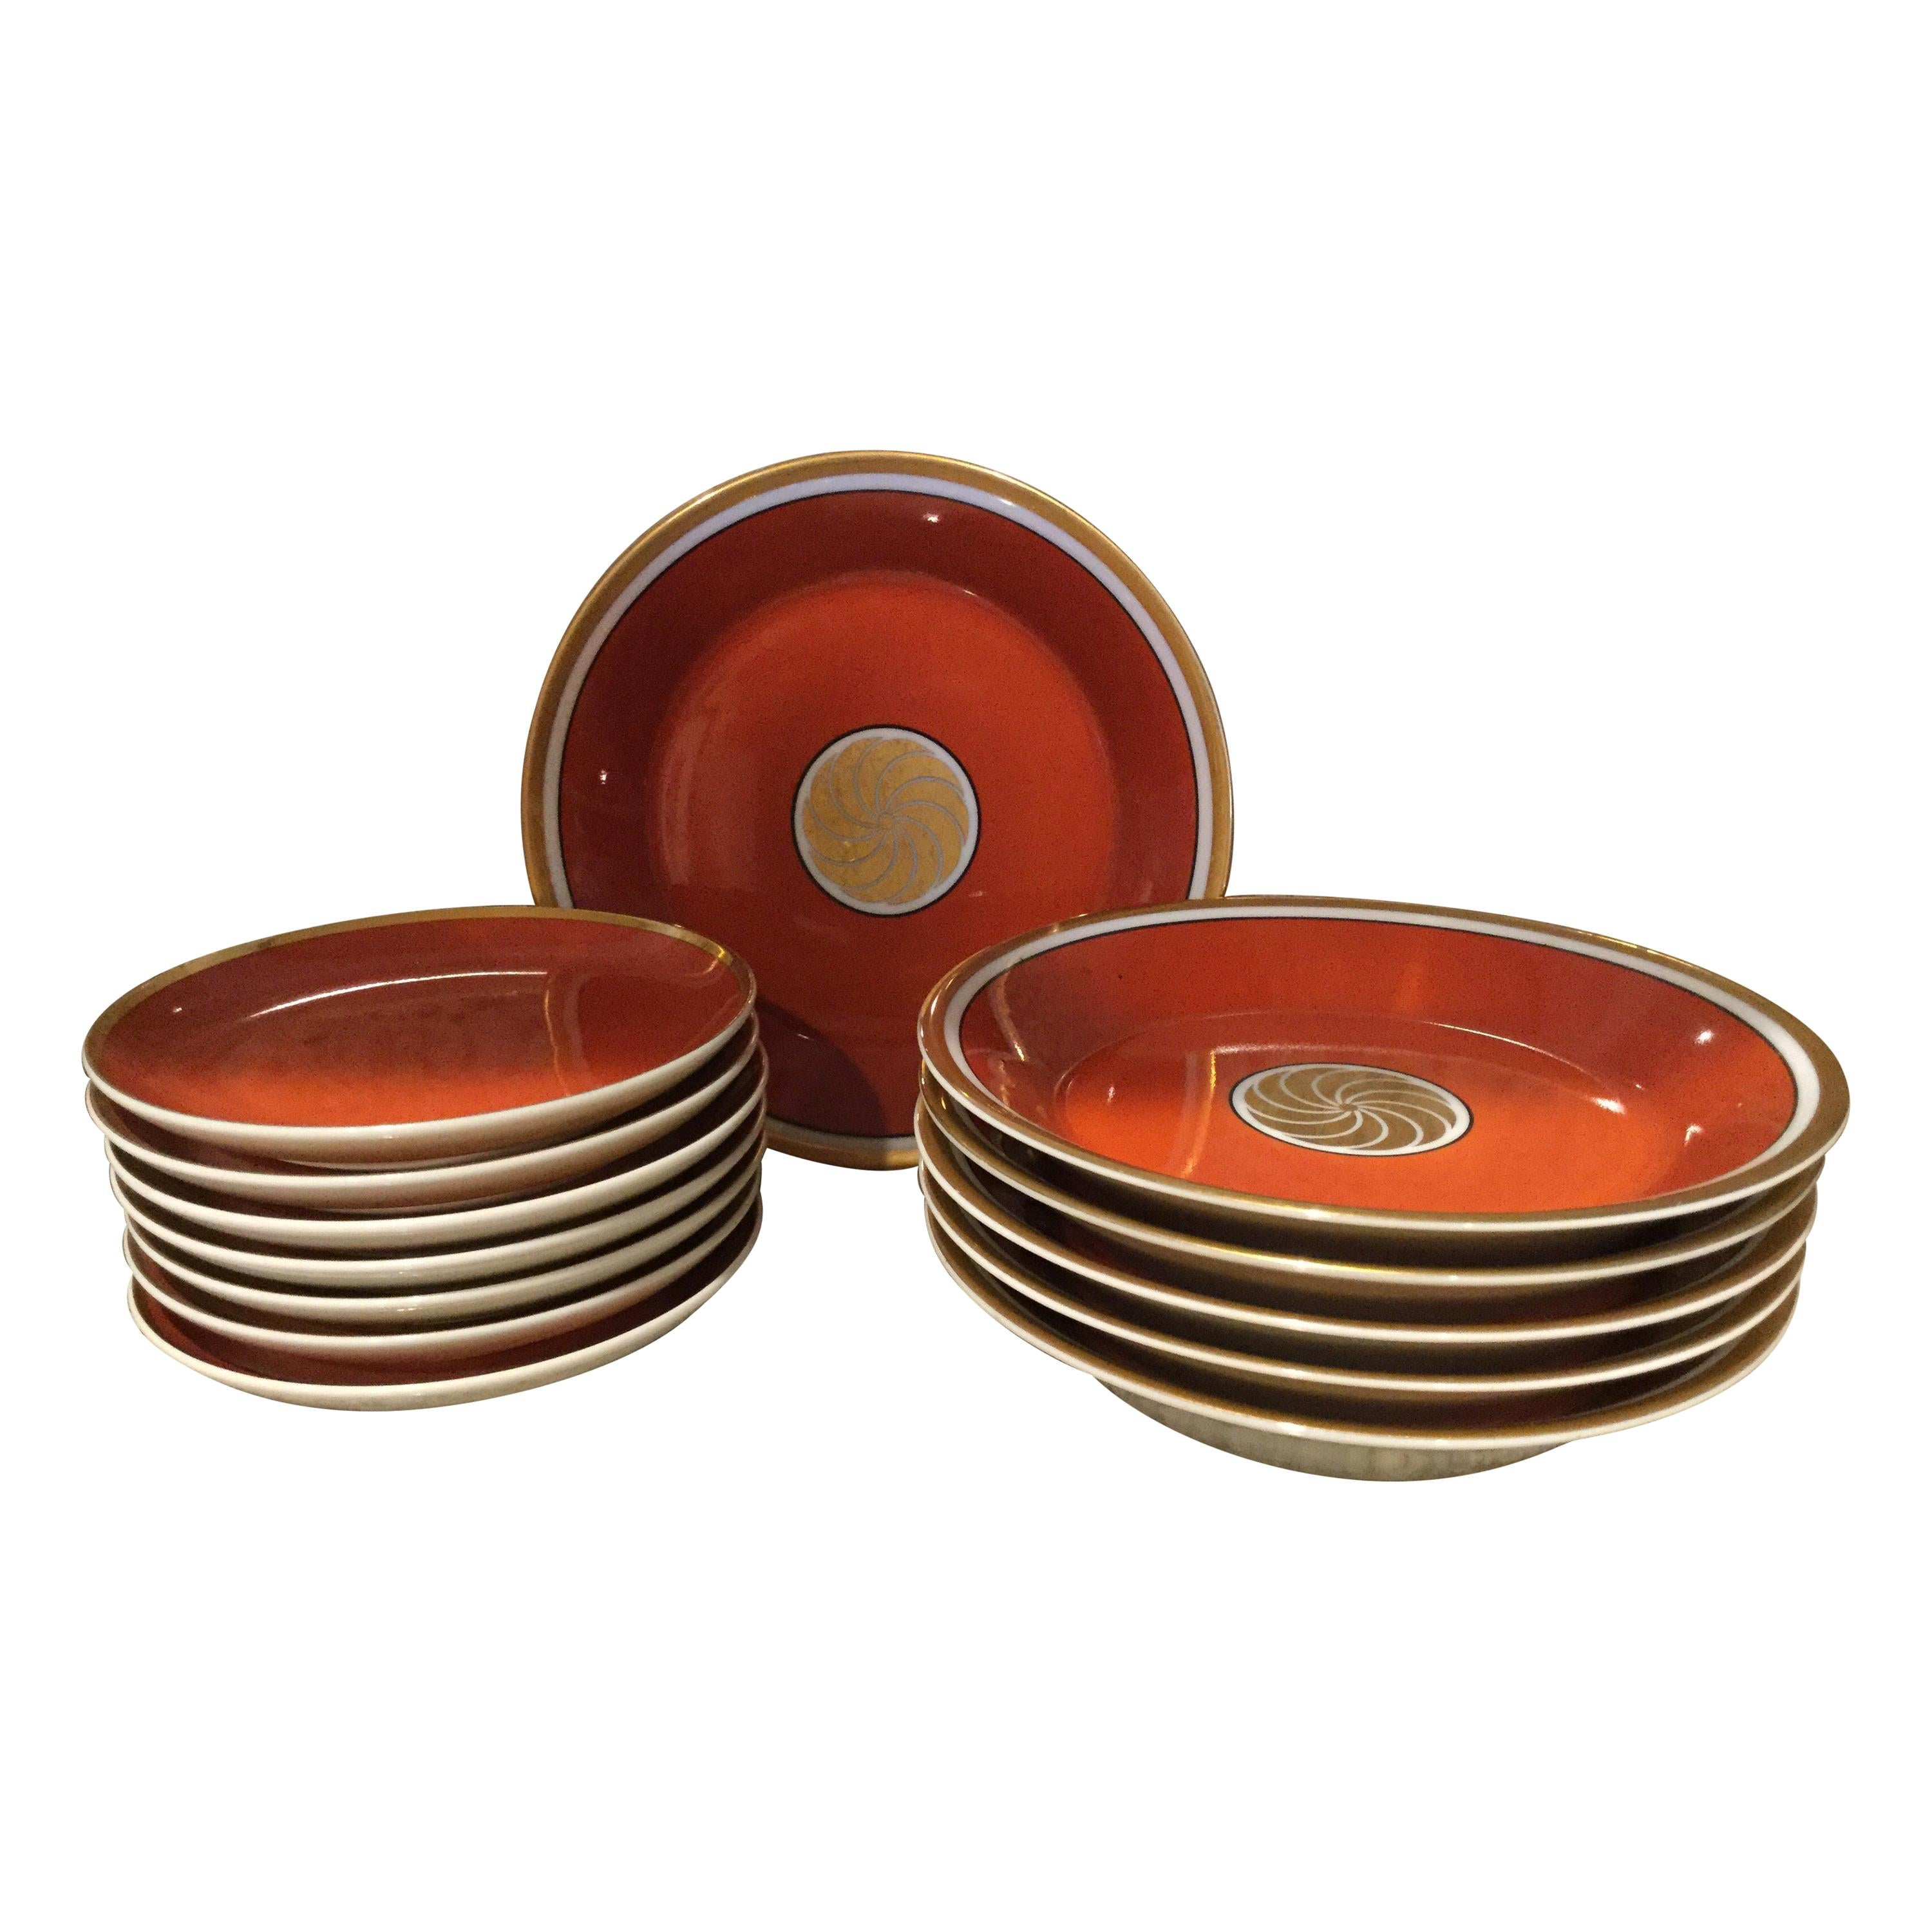 Fitz and Floyd Medaillon d'Or Set of 13 Persimmon and Gold Snack Plates, 1979